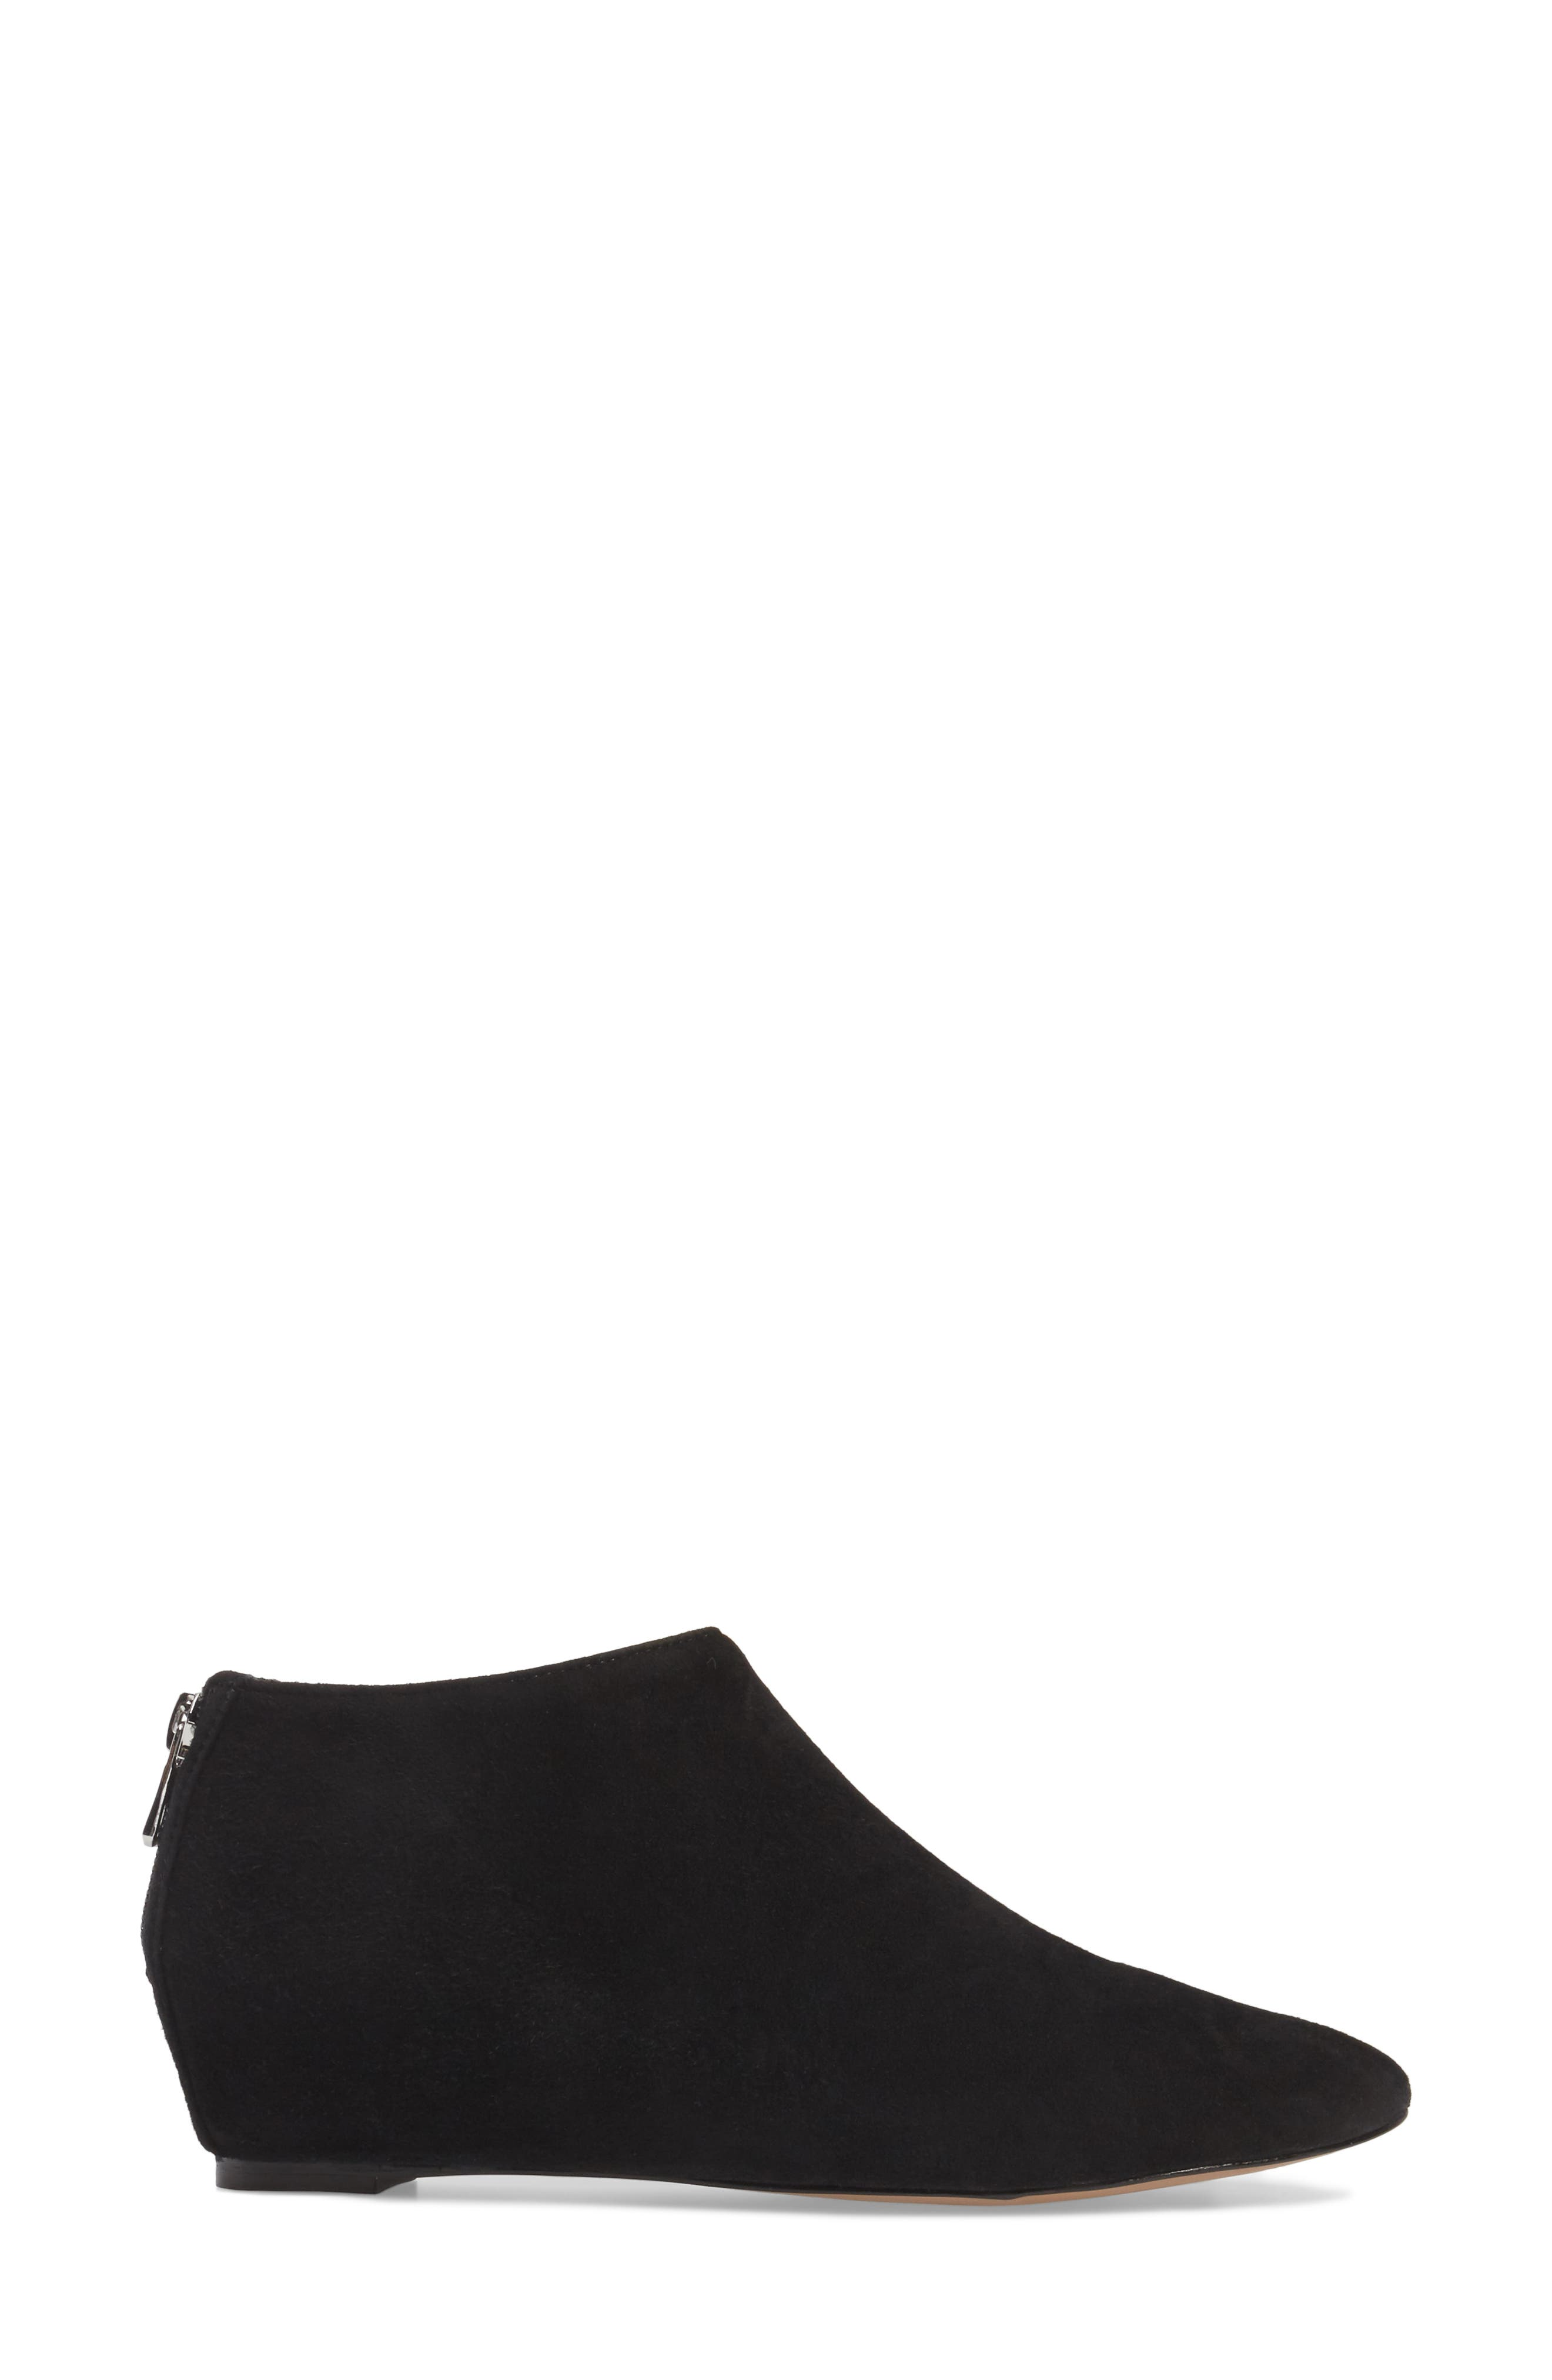 Aves Les Filles Beatrice Ankle Boot,                             Alternate thumbnail 3, color,                             Black Suede